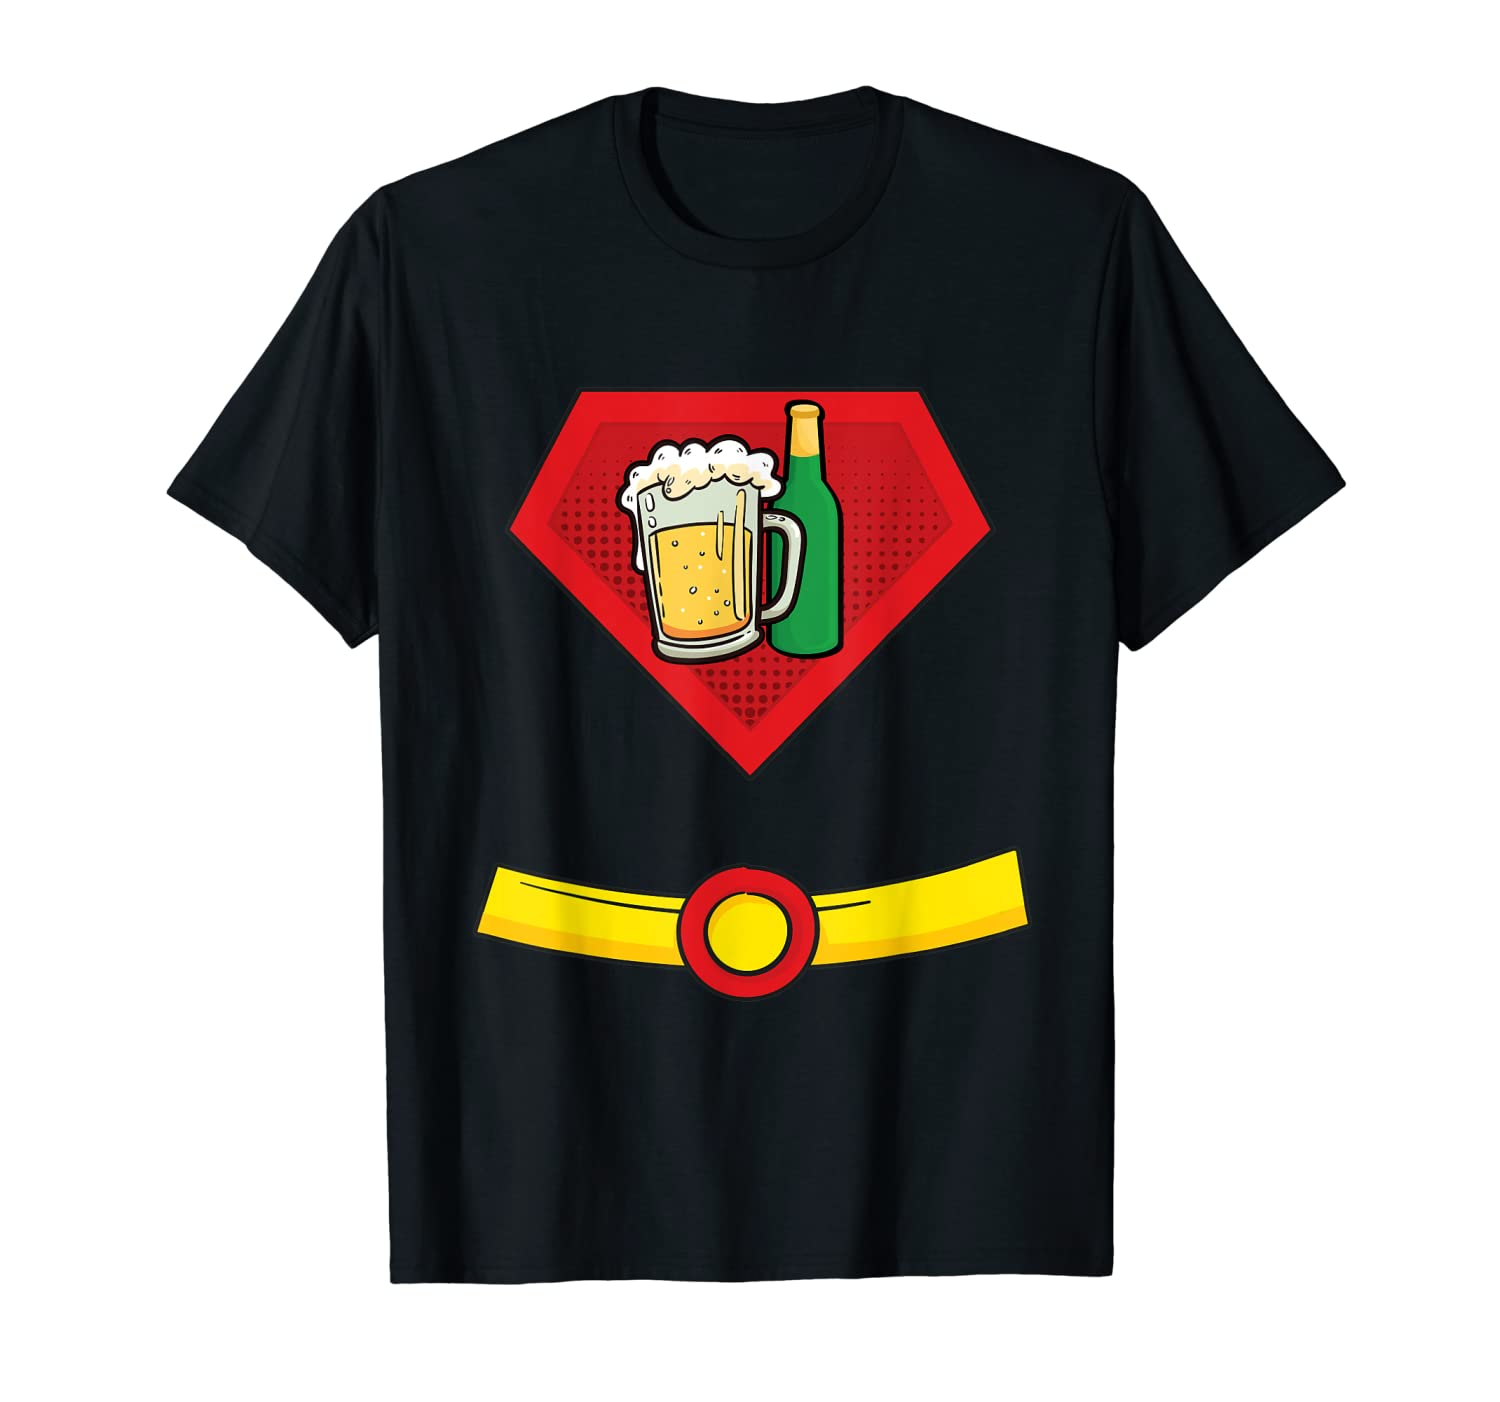 Beer Man Superhero Halloween Costume T-Shirt